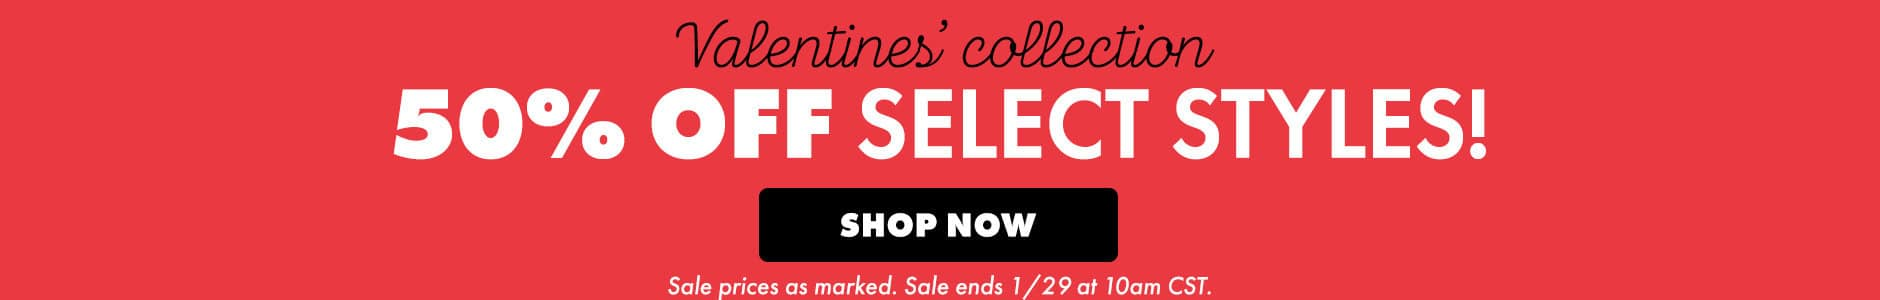 Valentine's collection. 50% off select styles! Shop now. Sale prices as marked. Sale ends 1/29 at 10am CST.